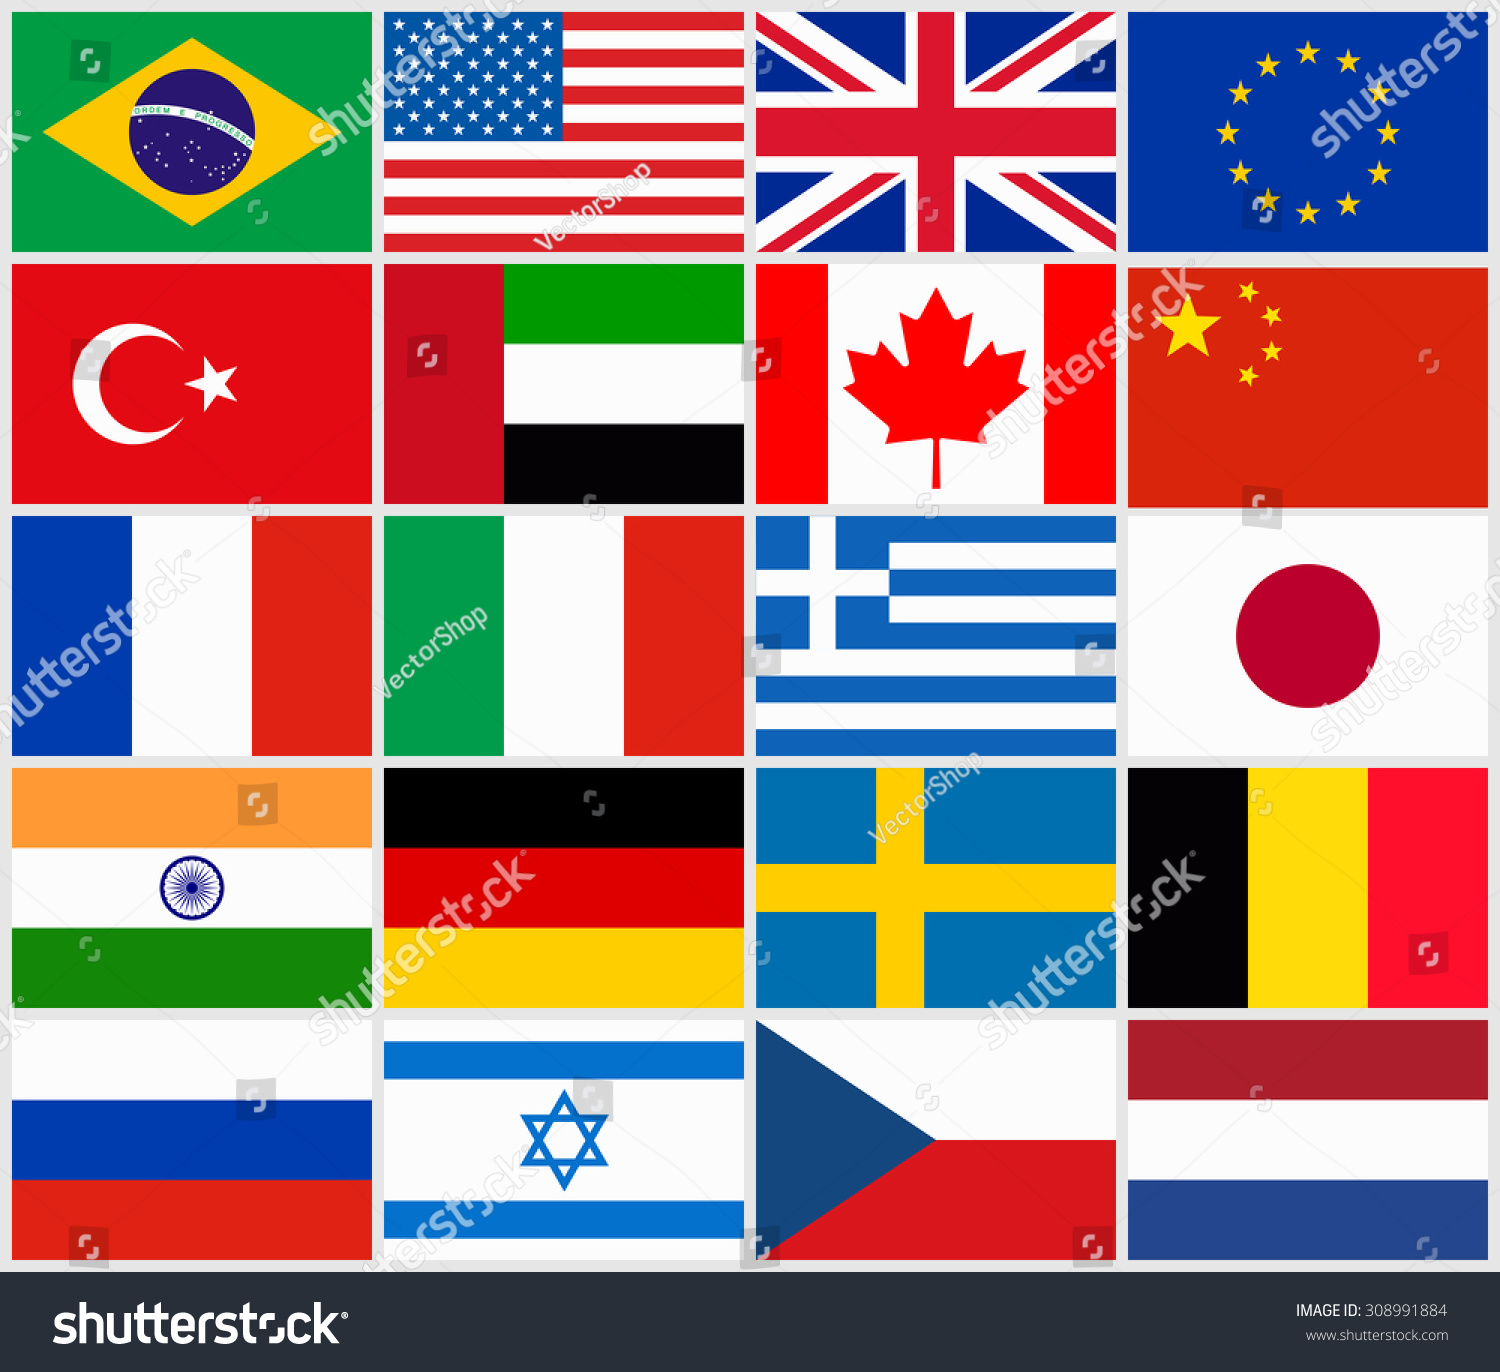 Set Popular Country Flags Stock Vector 308991884 - Shutterstock